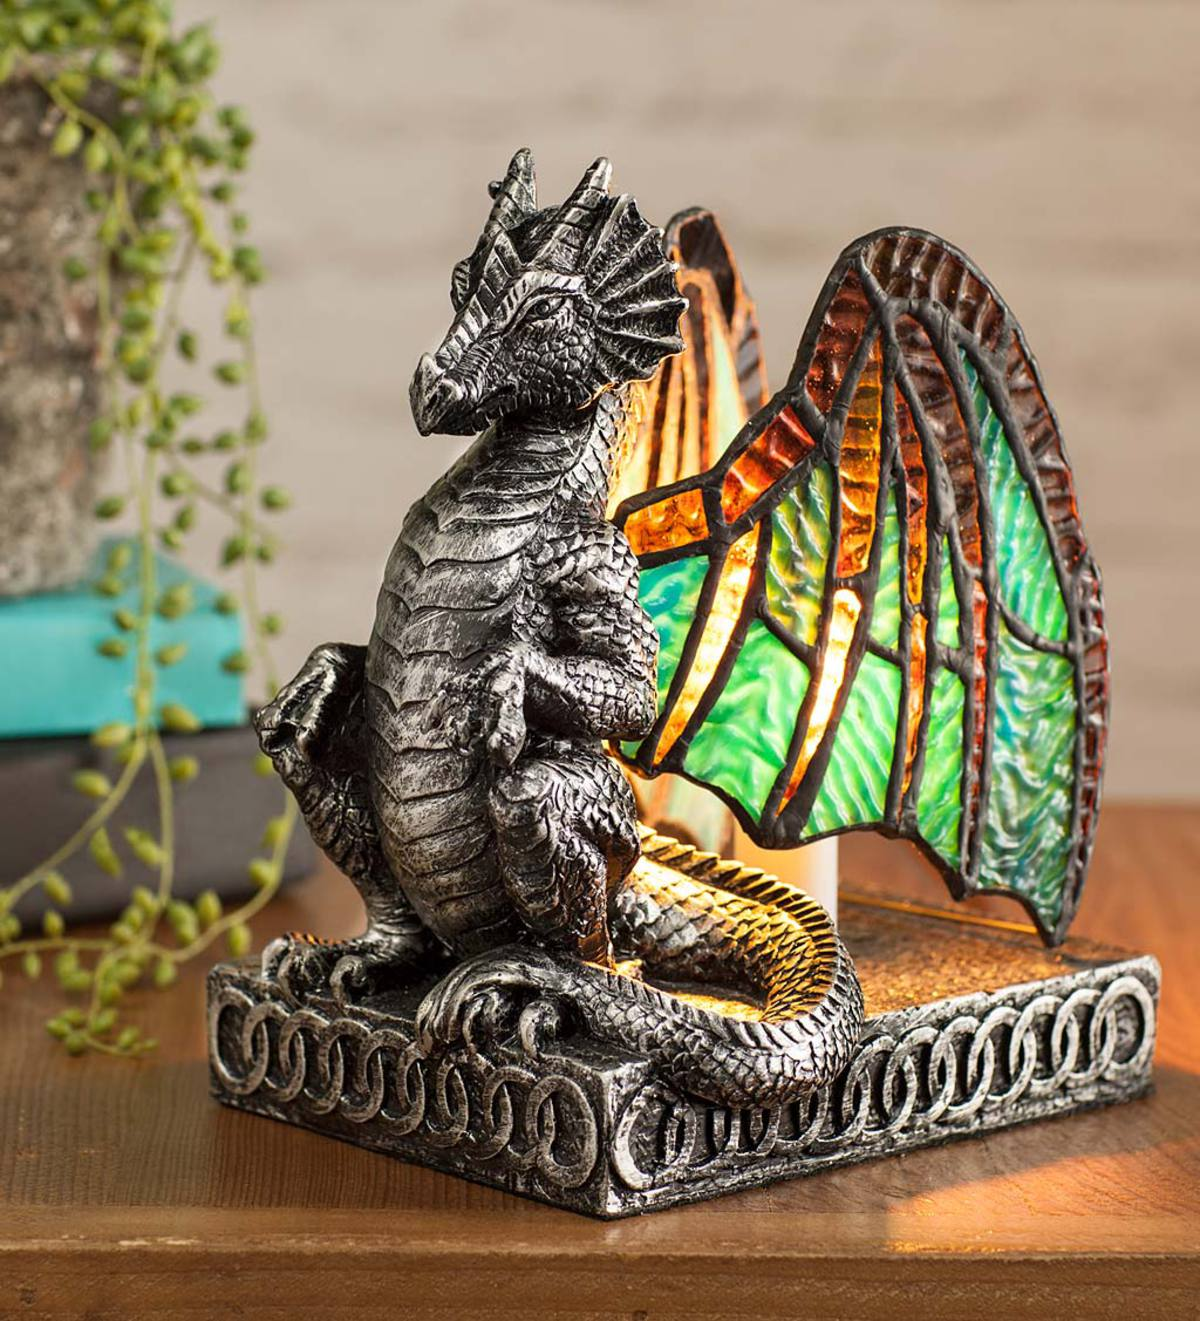 Lighted Stained Glass Dragon